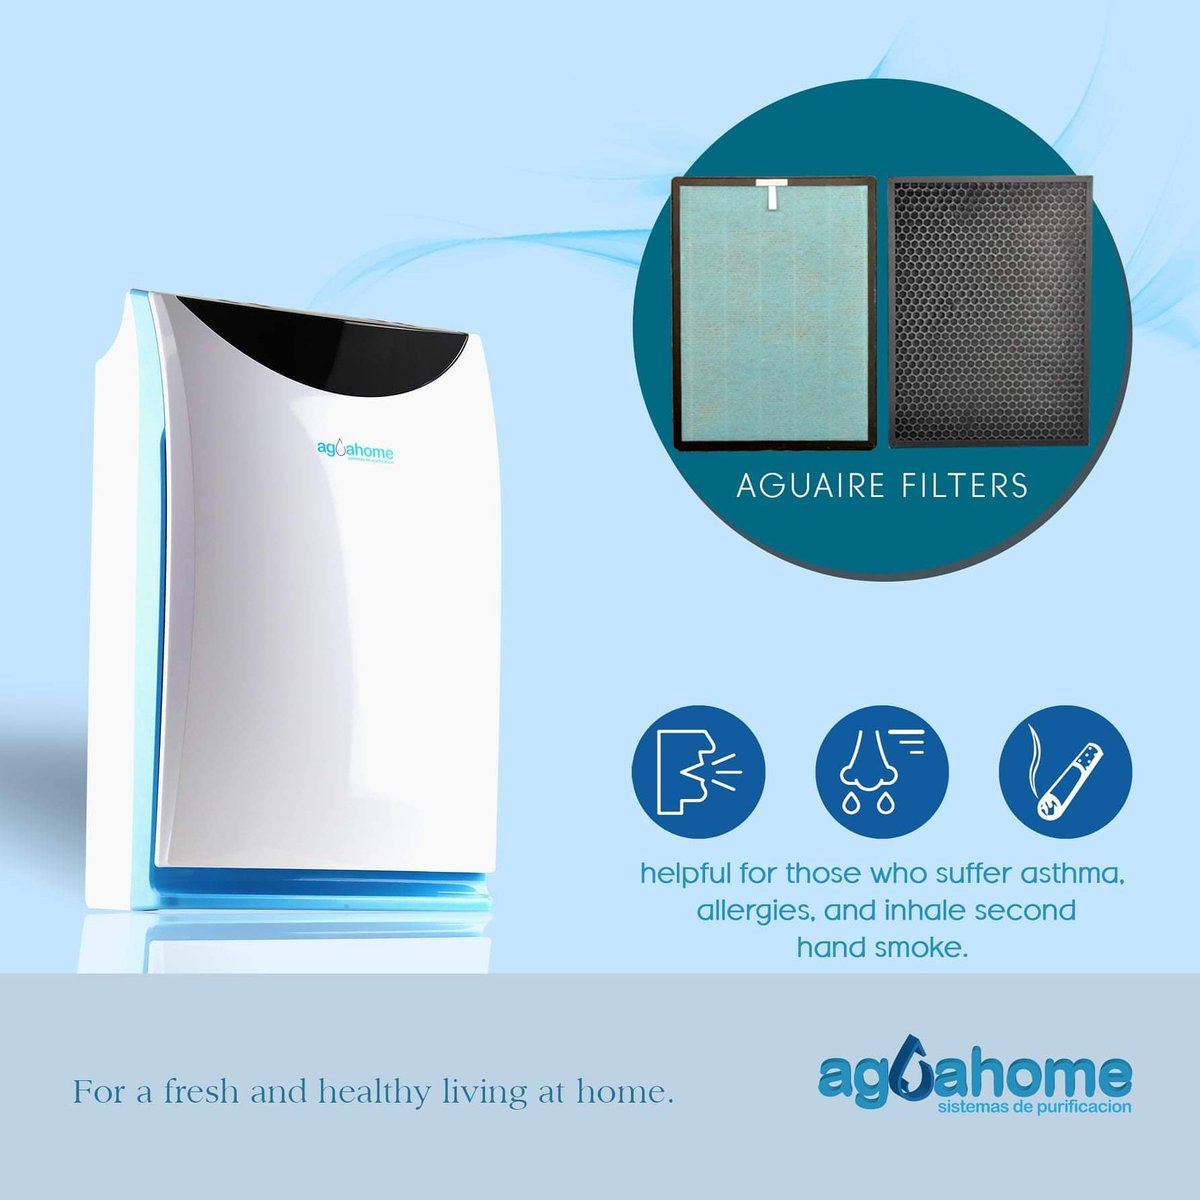 Aguahome Philippines (@aguahome)   Twitter